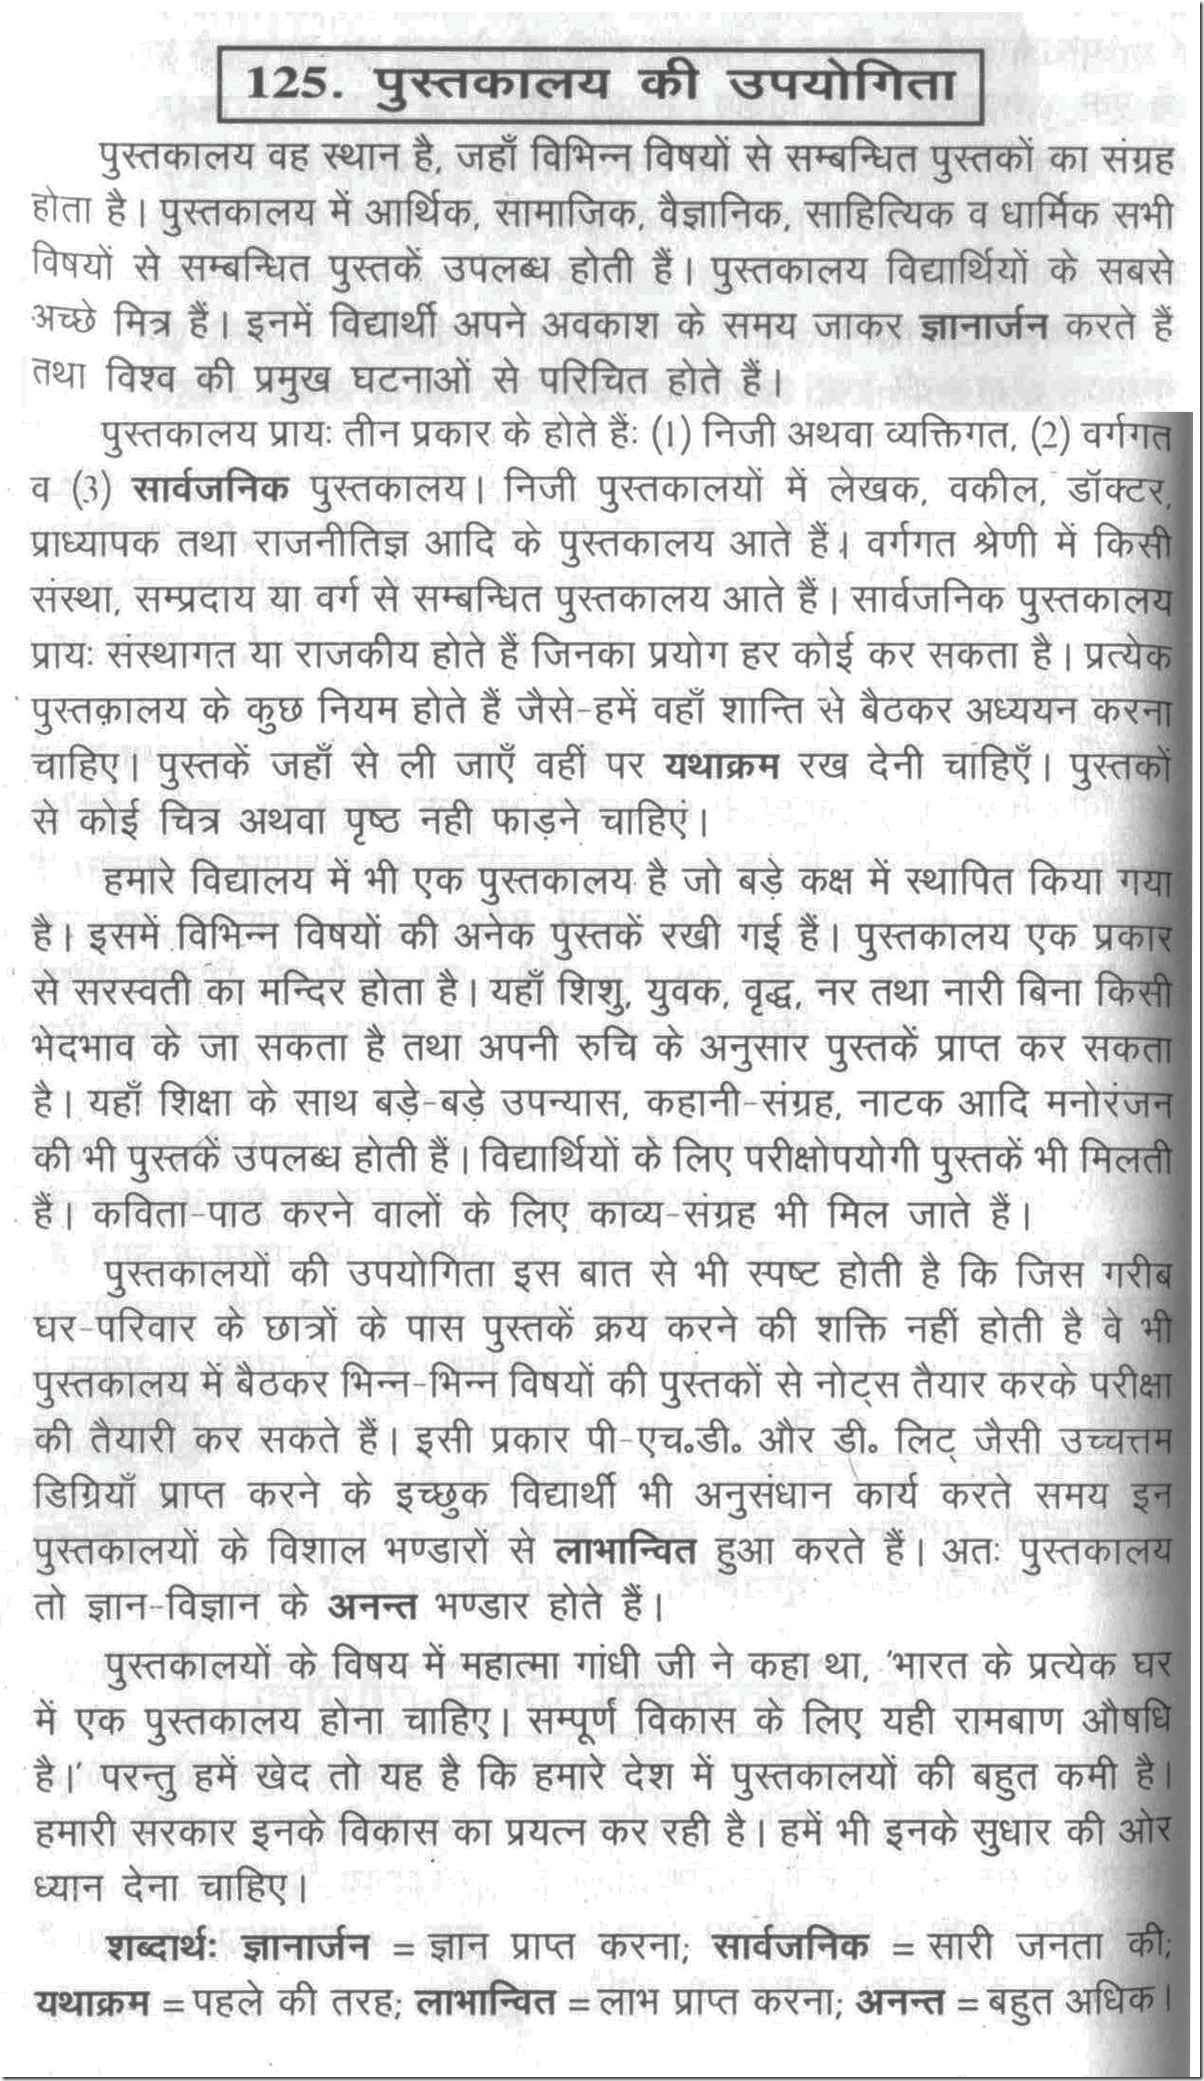 009 100125 Thumb Essay Example Good Habits In Exceptional Hindi Habit Wikipedia Eating Full